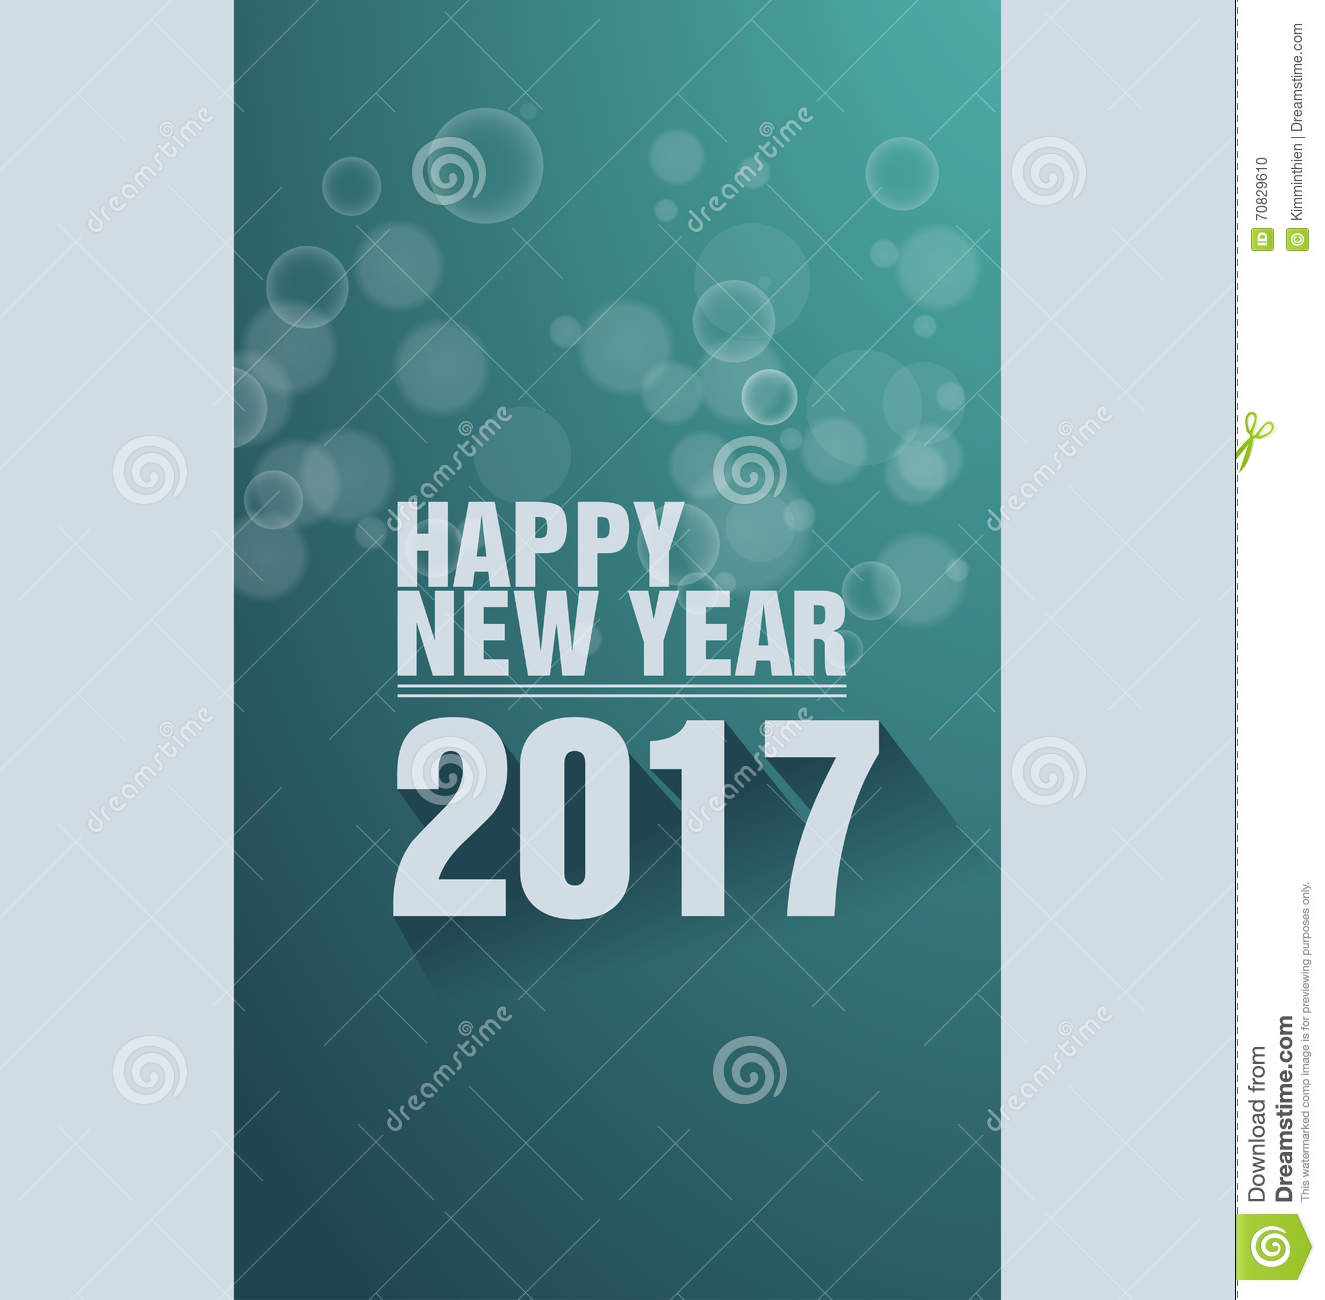 Happy New Year Greeting Card 2017 Stock Vector   Image: 70829610